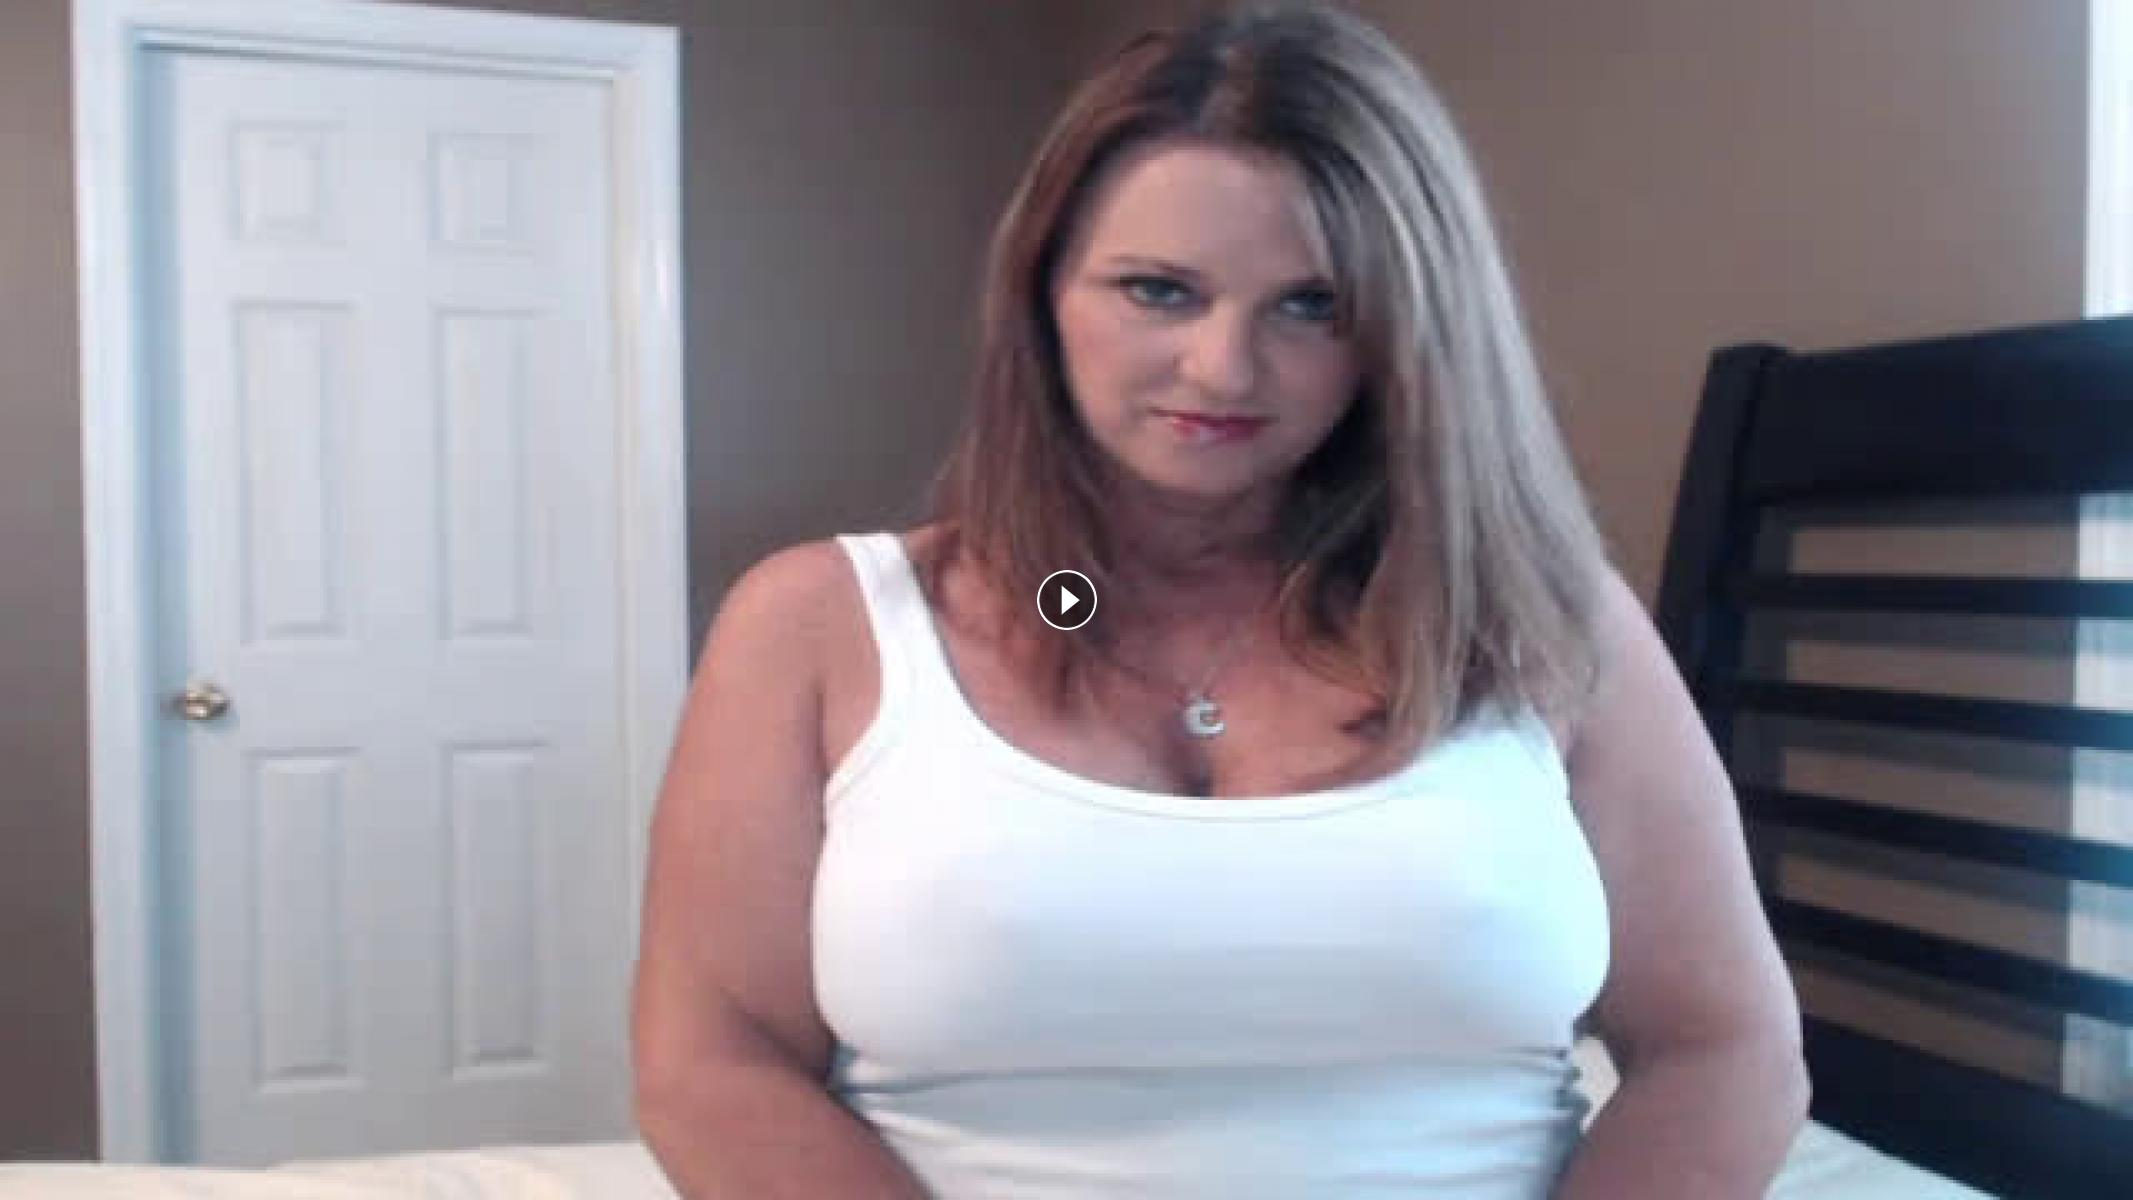 watched-my-wife-webcam